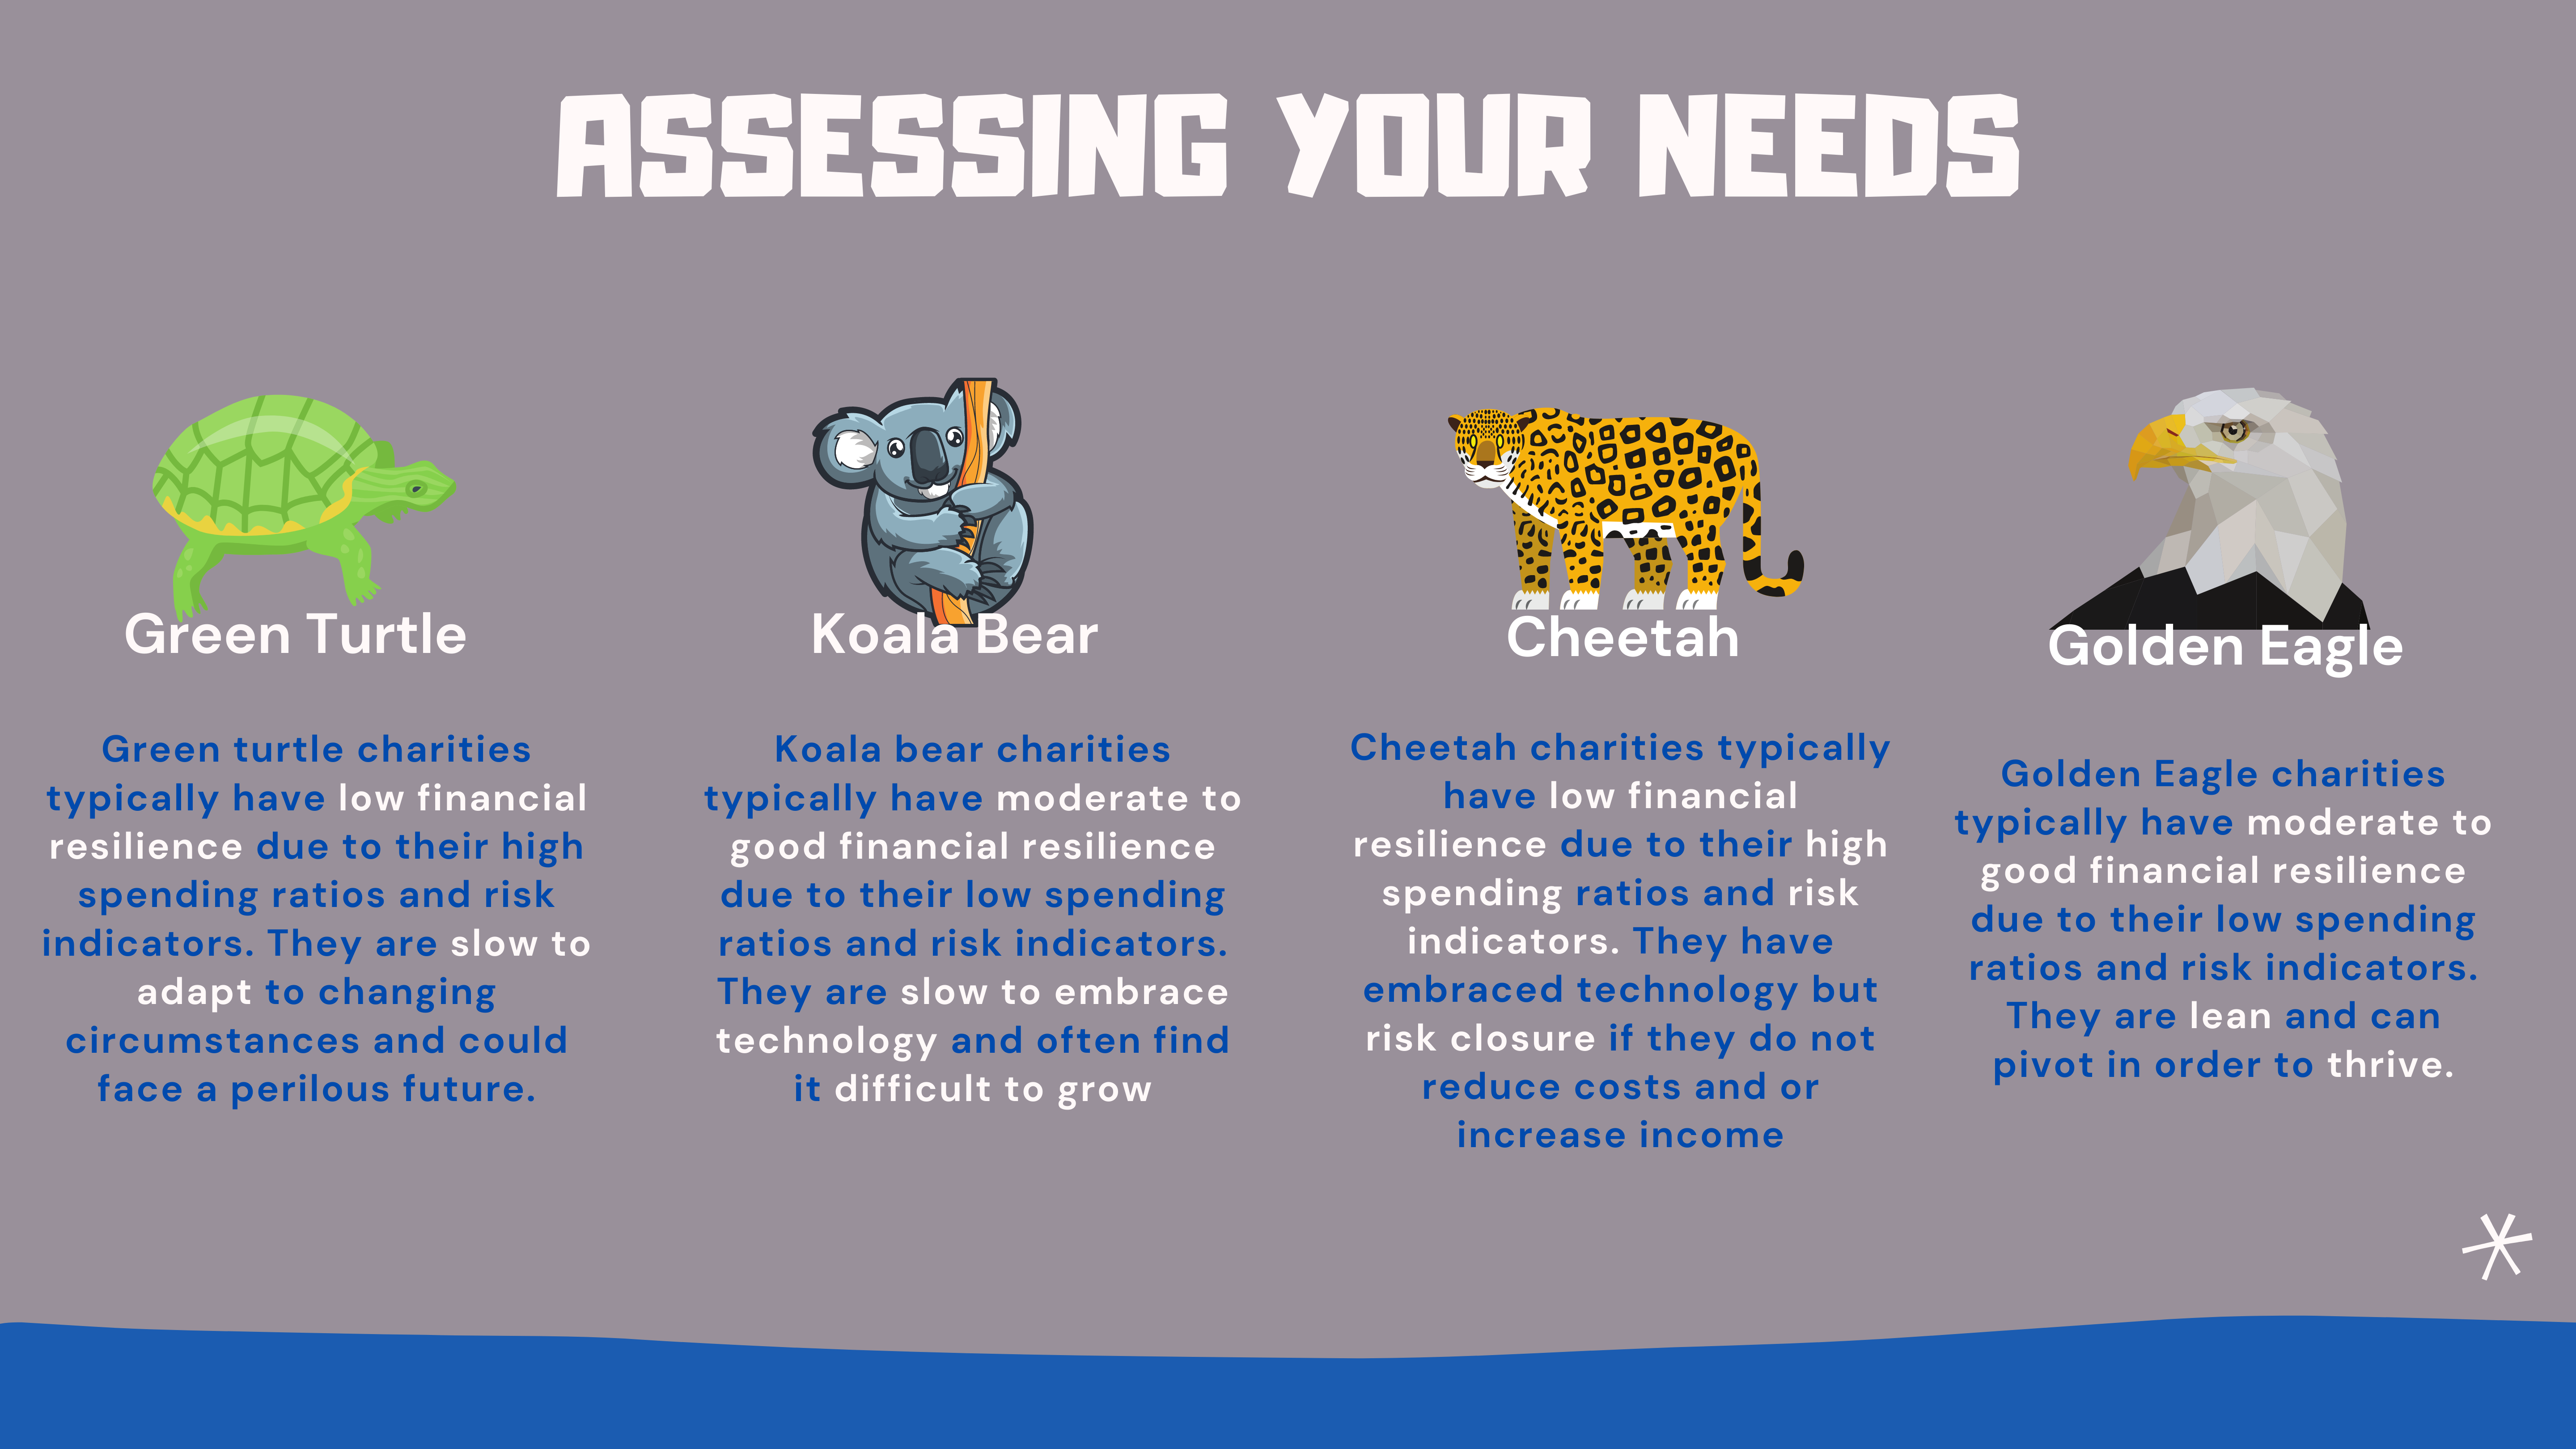 Charity health check - assessing your needs